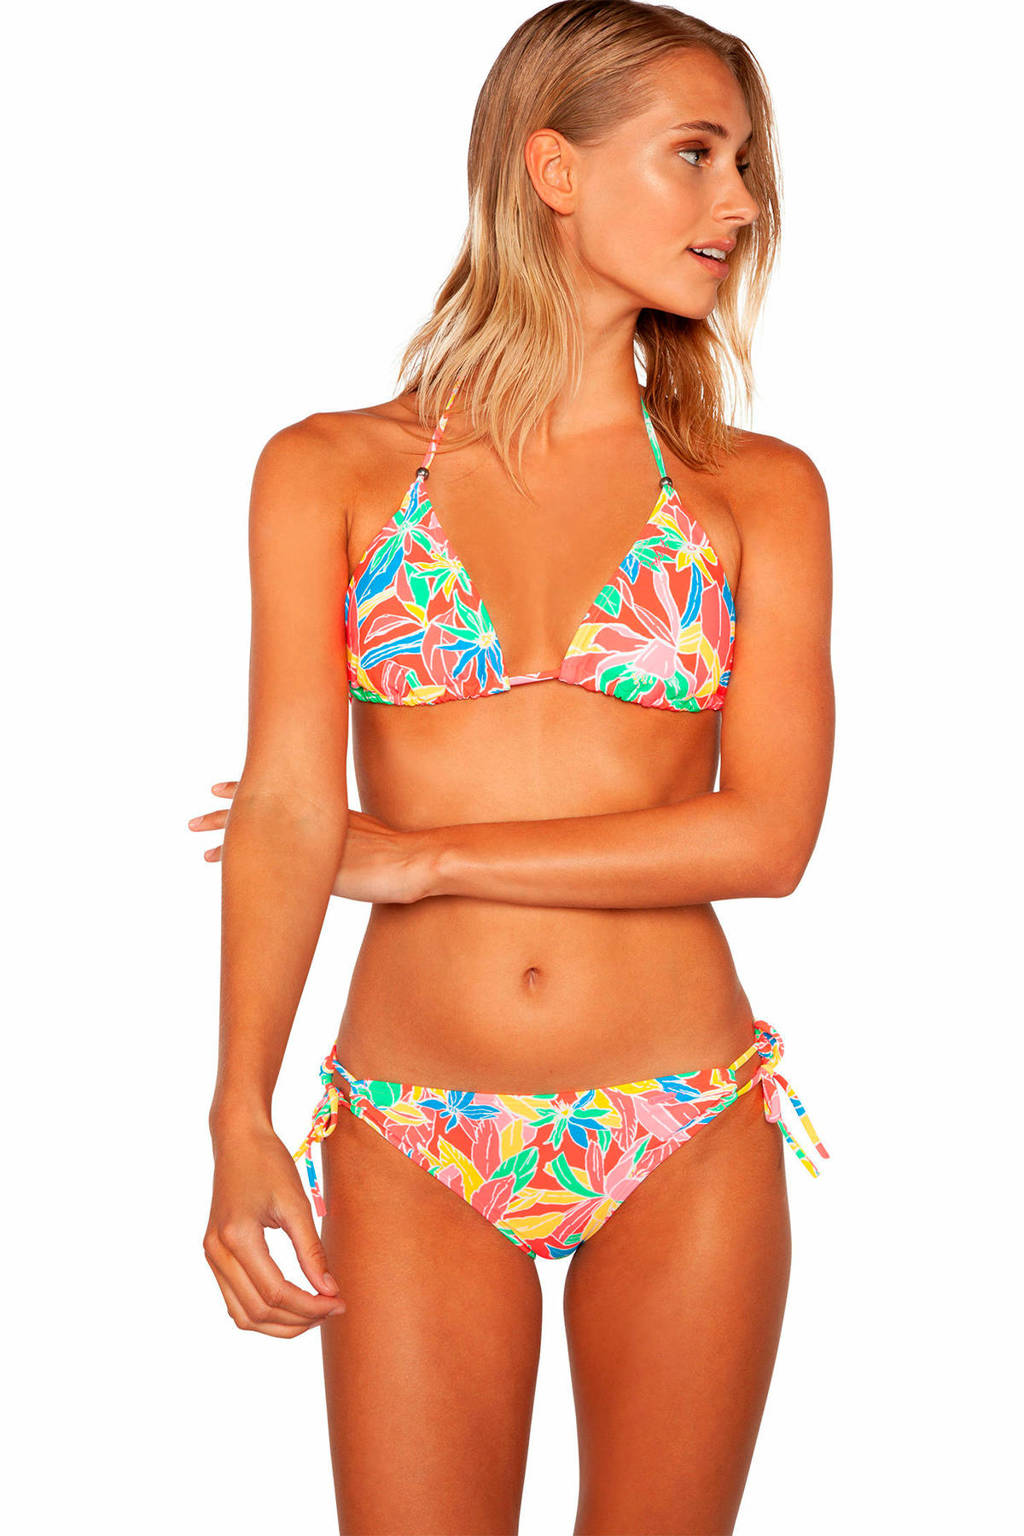 Protest triangel bikini Mystical met all over print roze, Parakeet